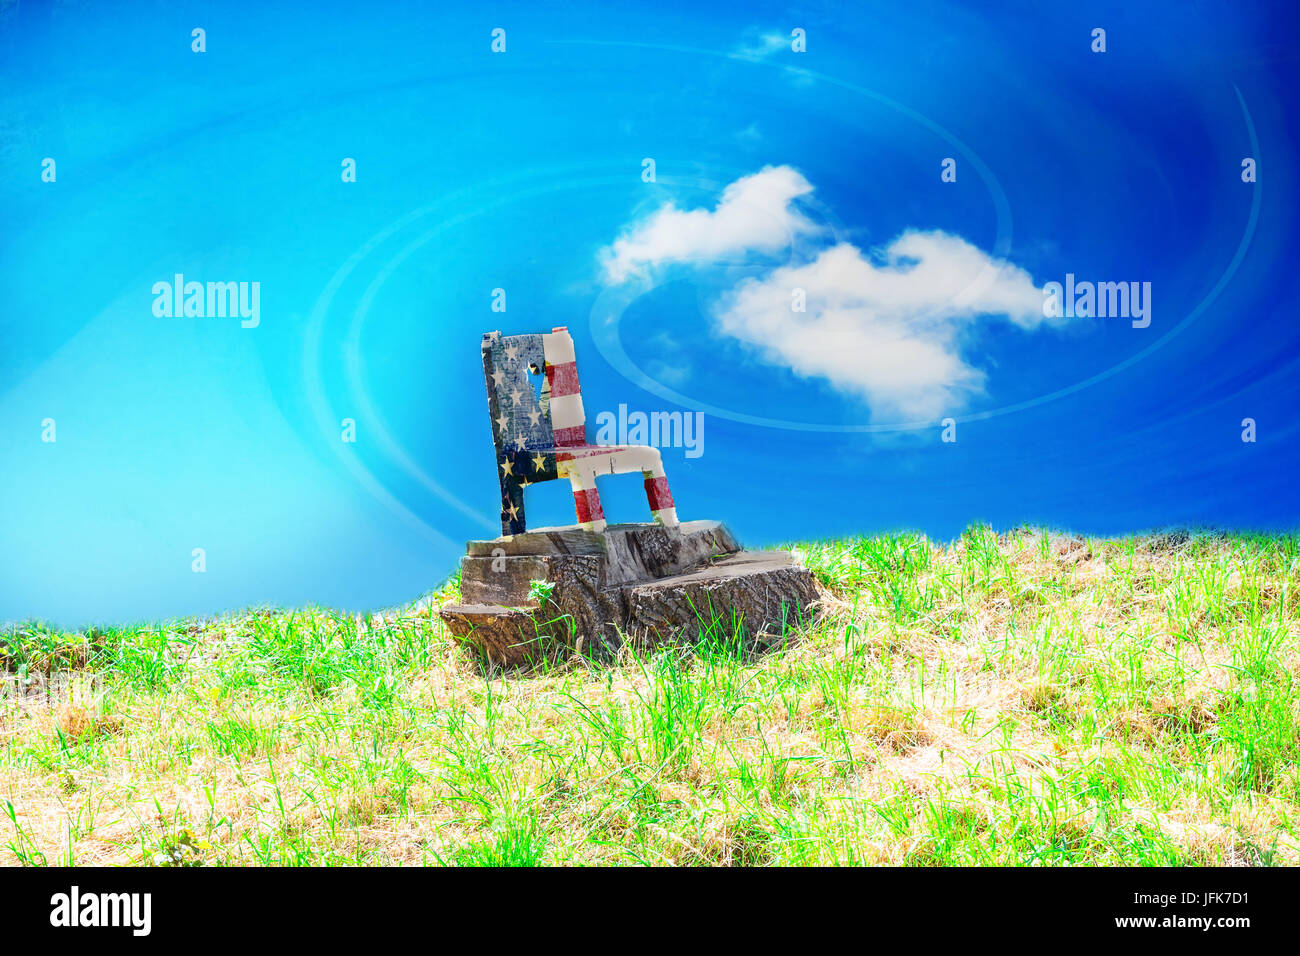 Wooden chair on a lawn in Stars and Stripes colors - Stock Image